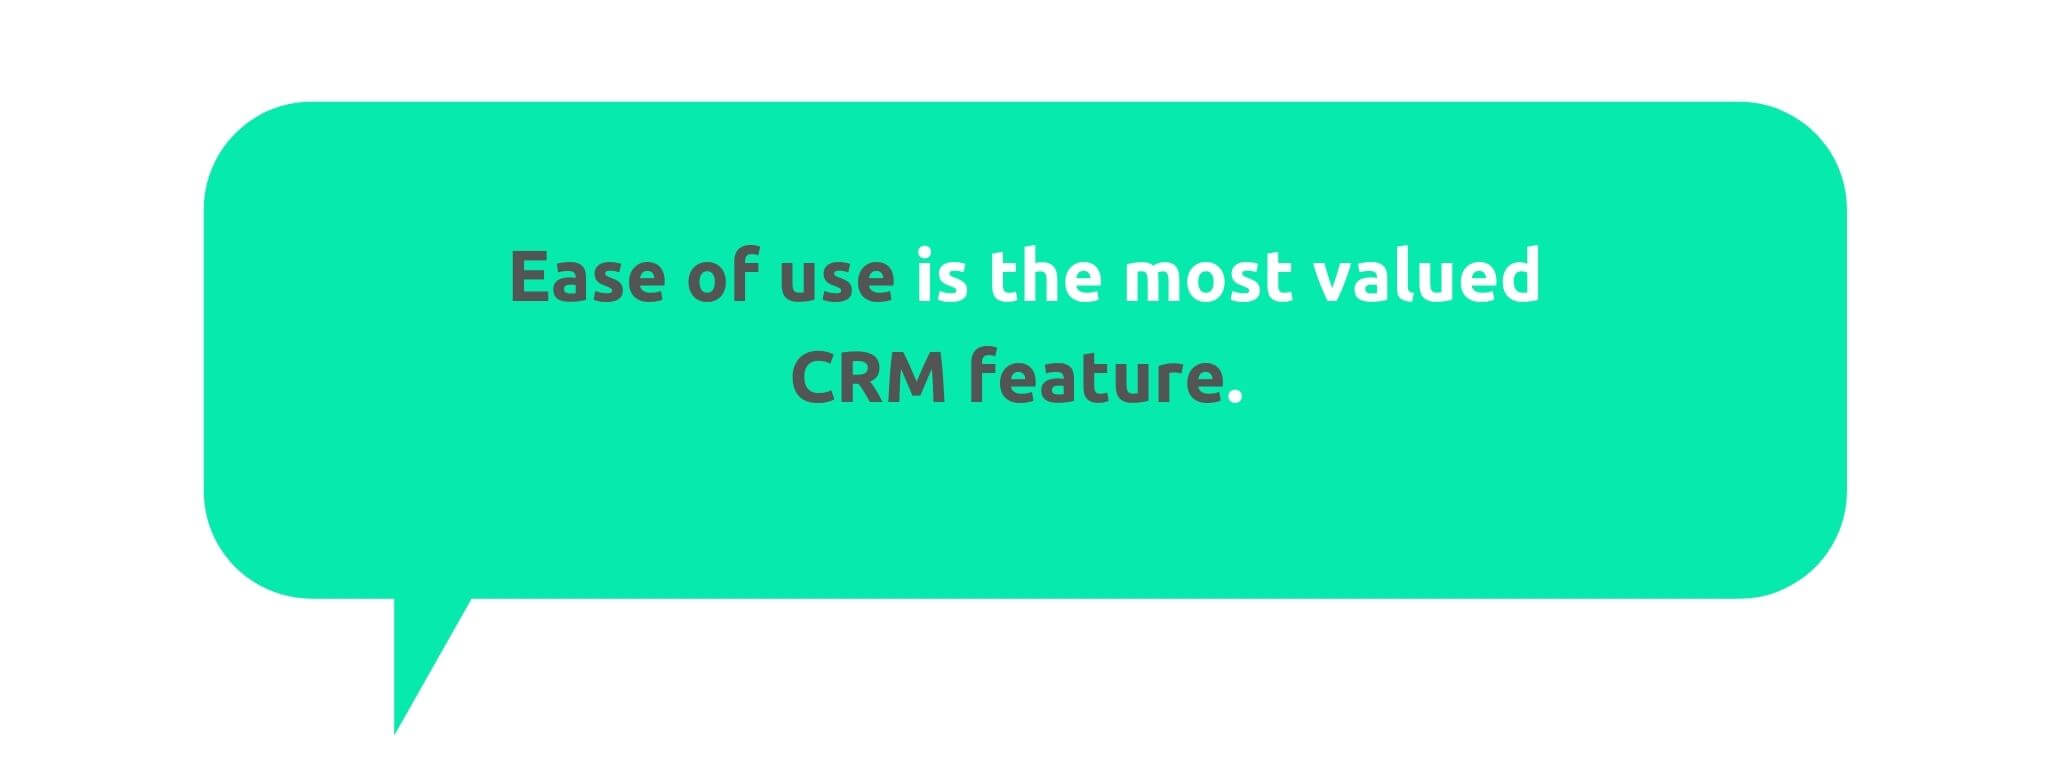 Business Value Ease of Use - 50+ CRM Stats - Replyco Helpdesk Software for eCommerce